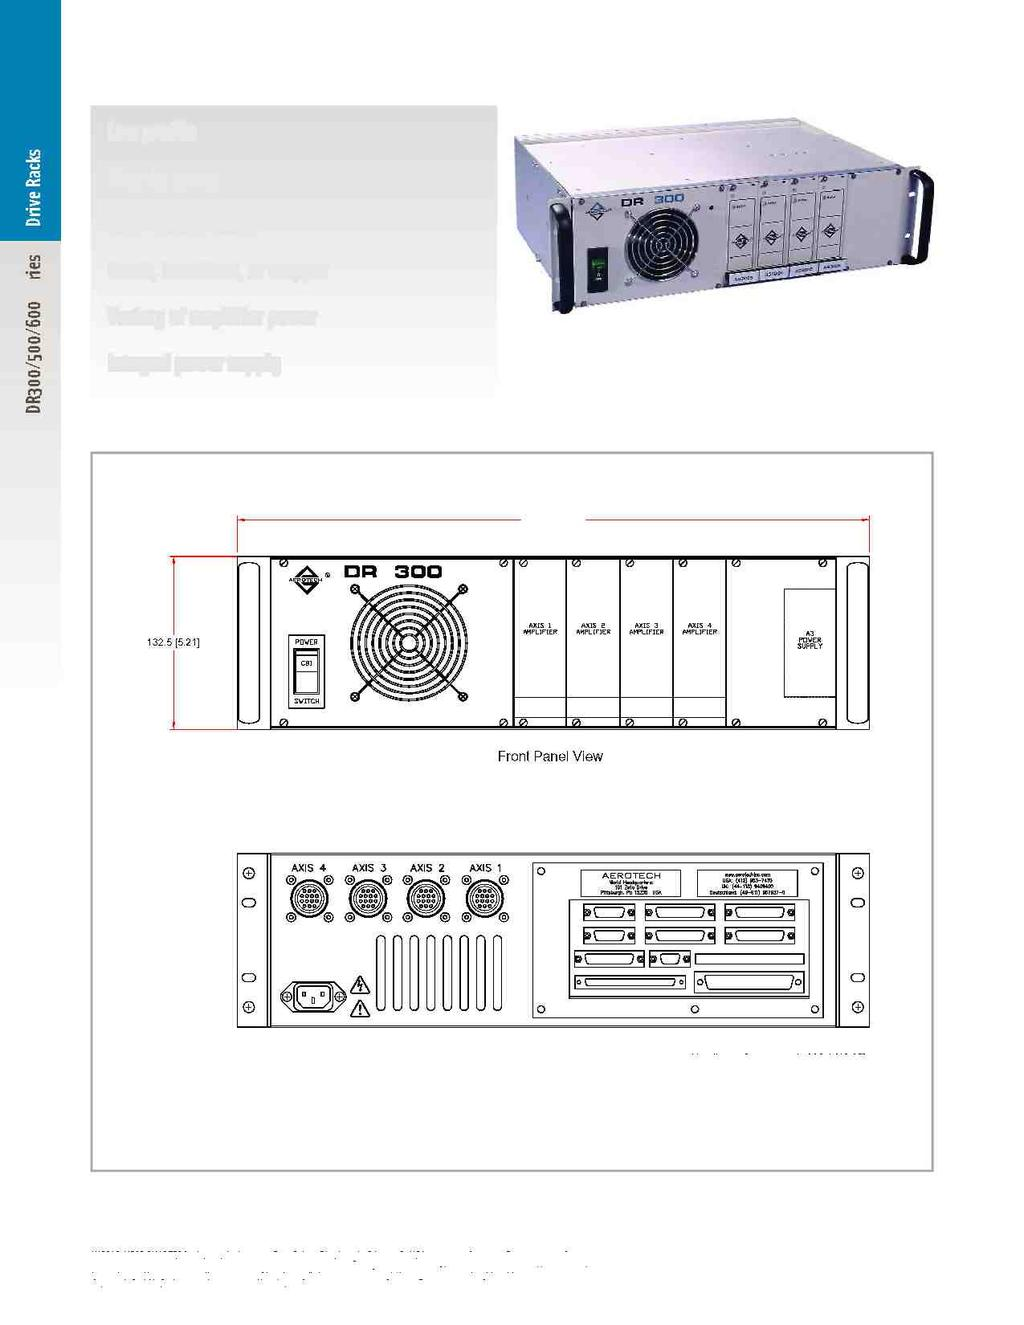 I H Y Fe Dr Series Drive Racks Plug In Drives Rack Mount Design Wiring Permanent Magnet Latching Contactors For Nonmotor And Lighting Dr300 Specifications Dimensions Low Profile V Brush